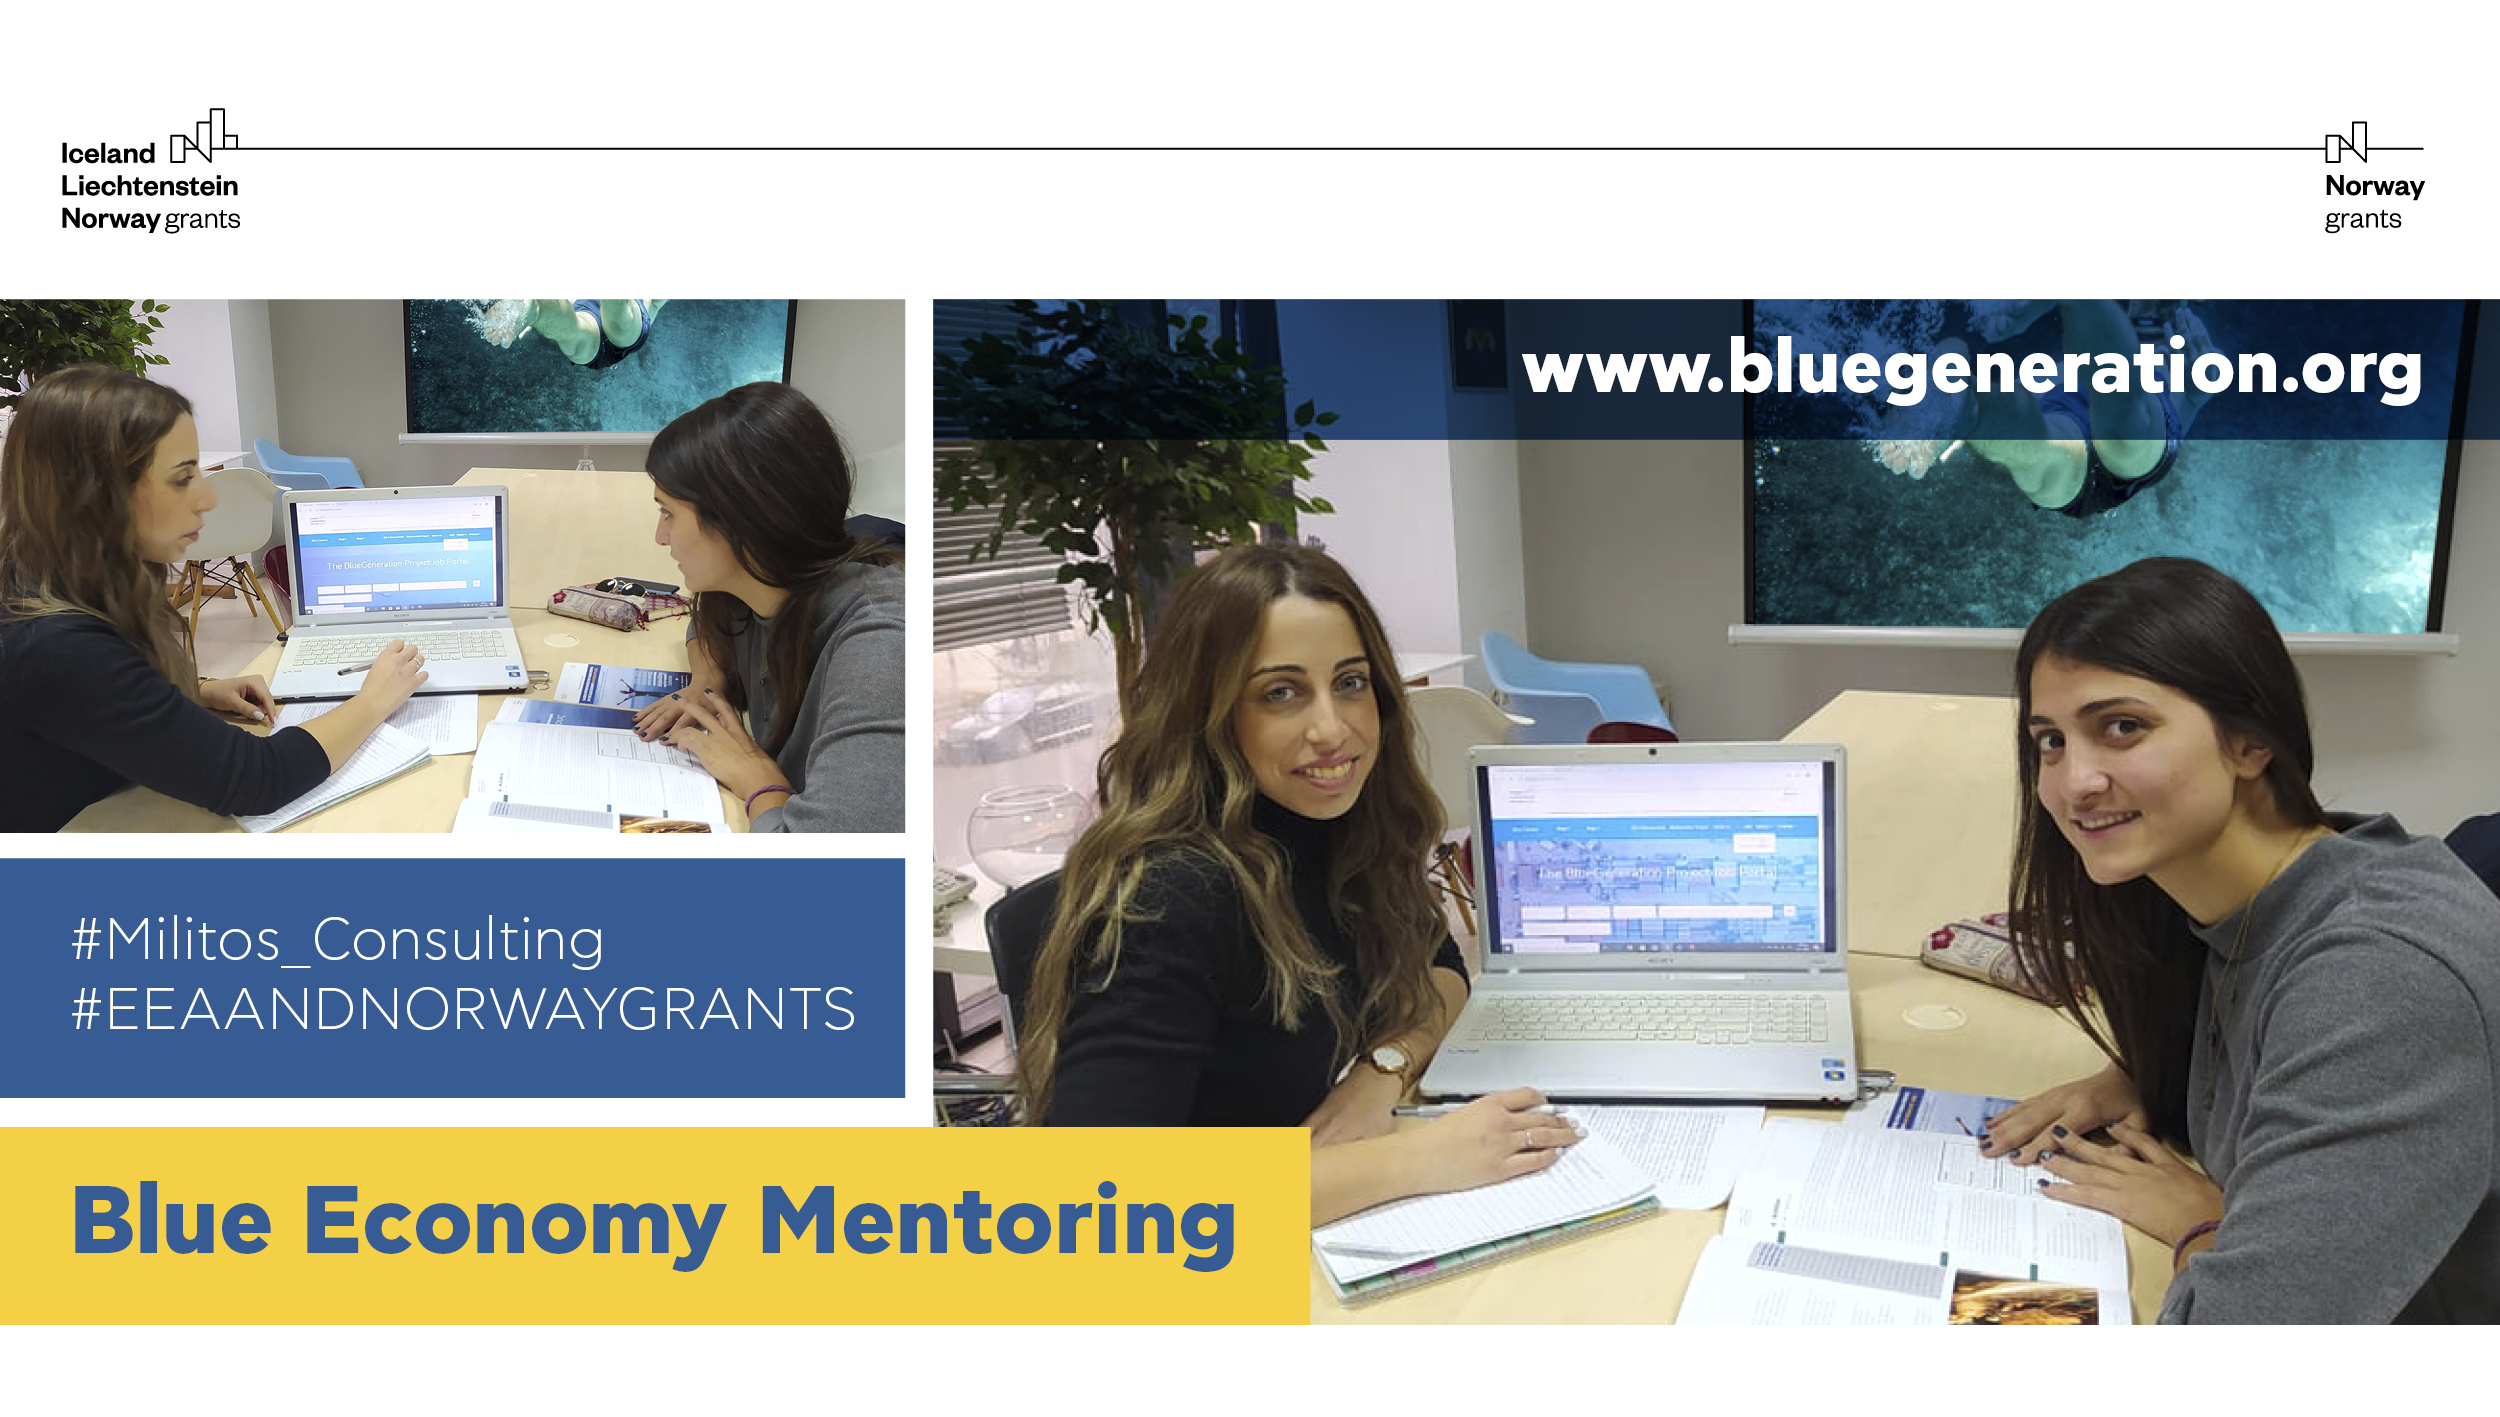 Mentoring in Blue Economy from Militos Consulting in Greece